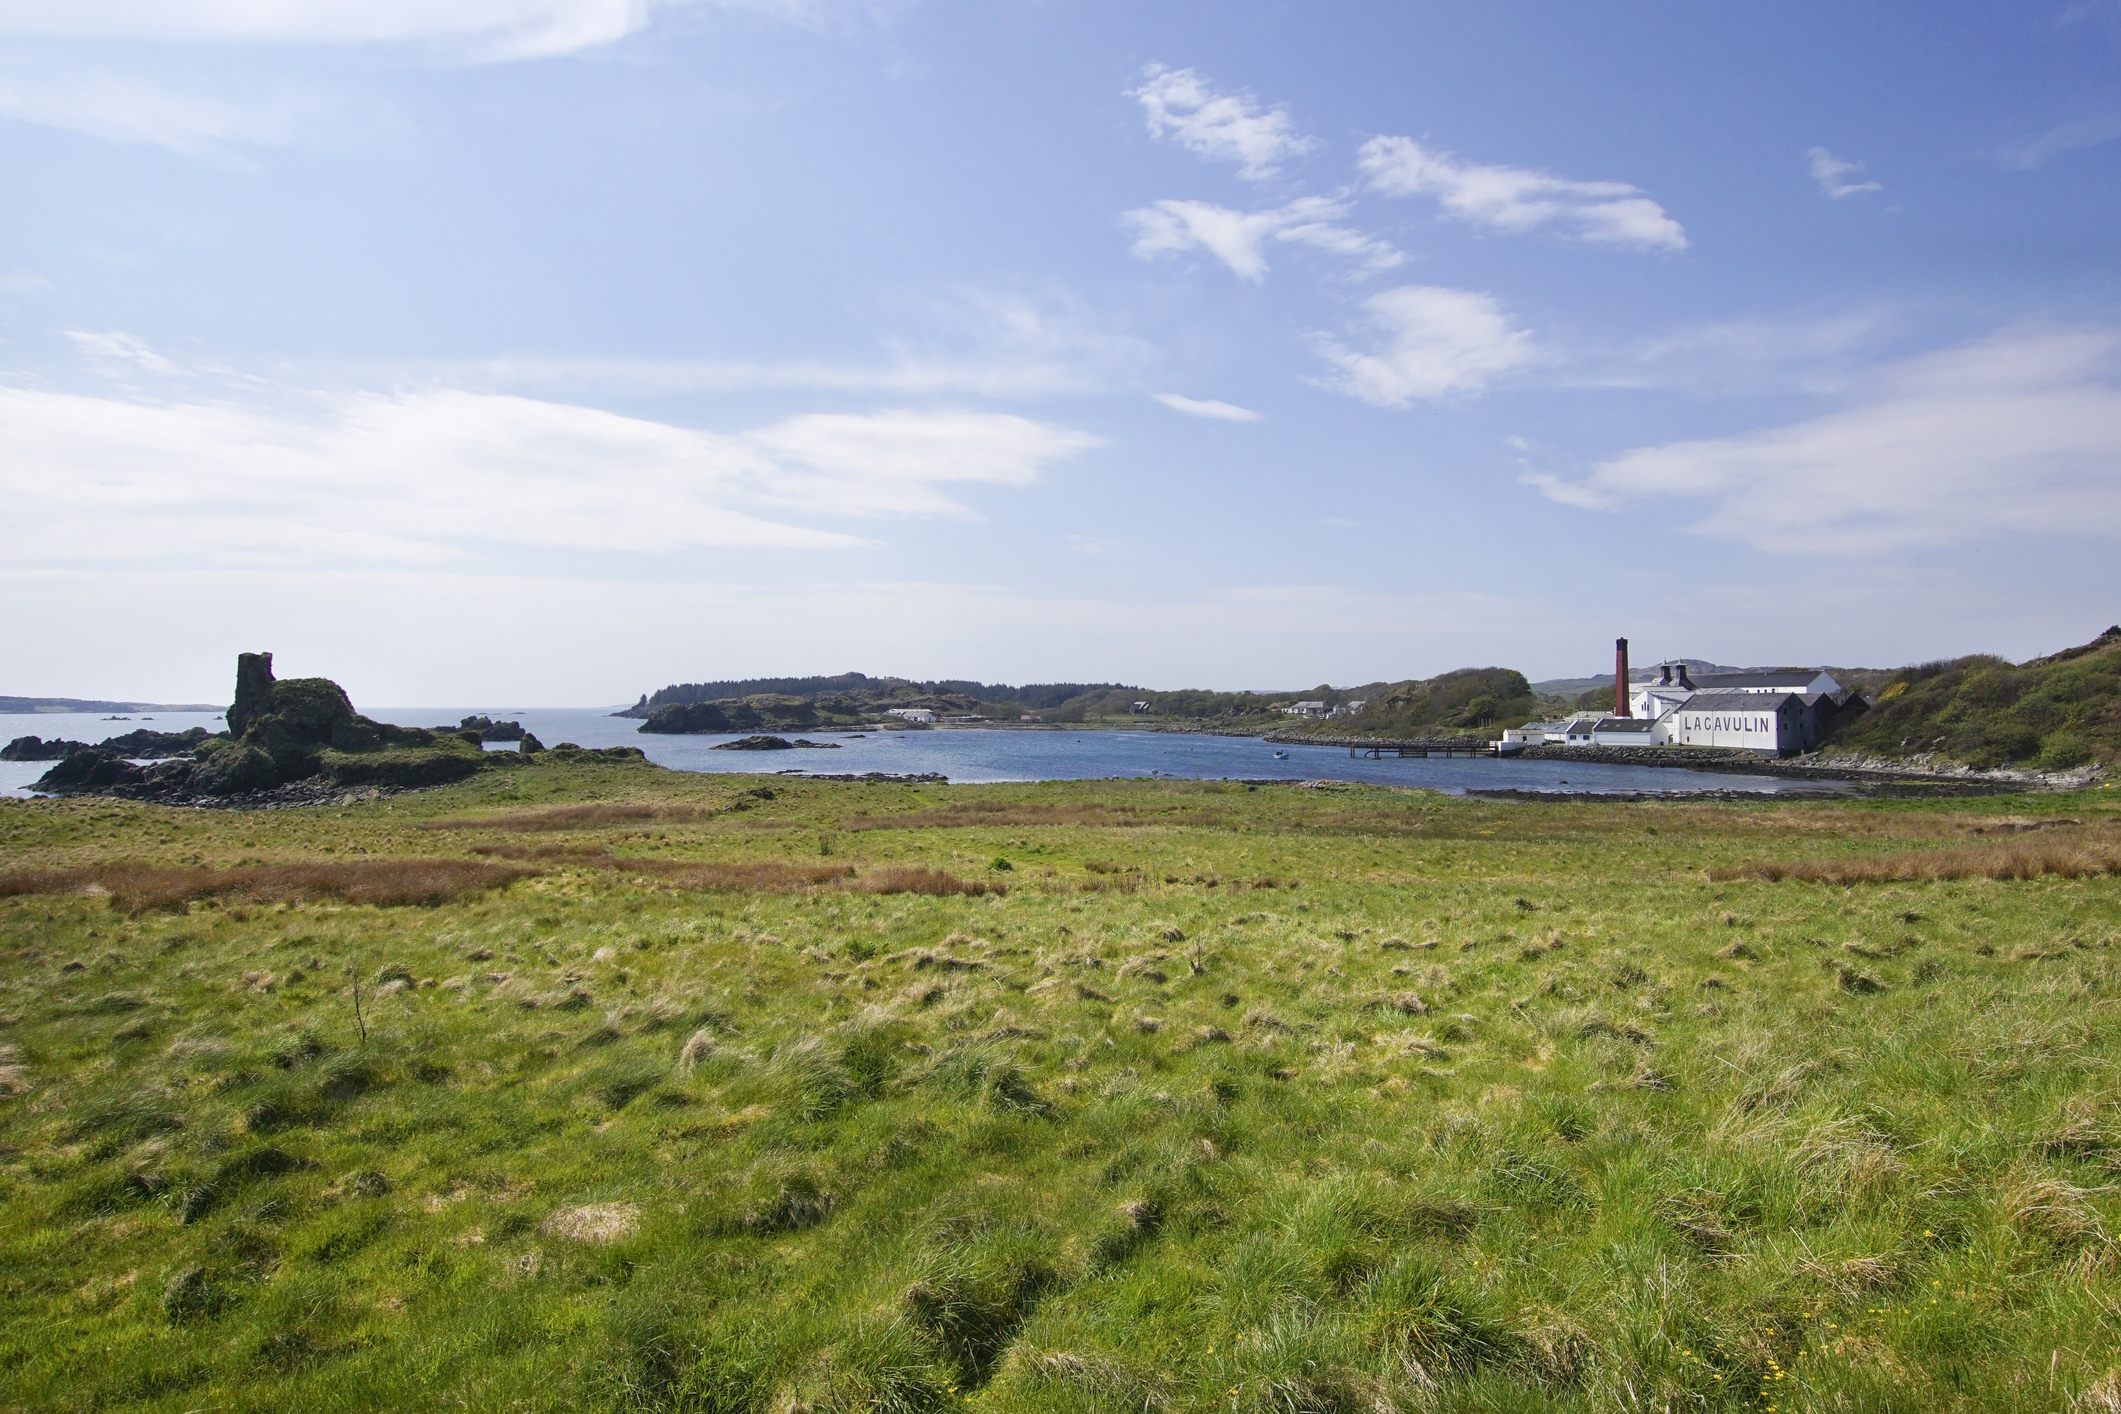 Lagavulin, Port Ellen, Islay, one of three distilleries on the island.